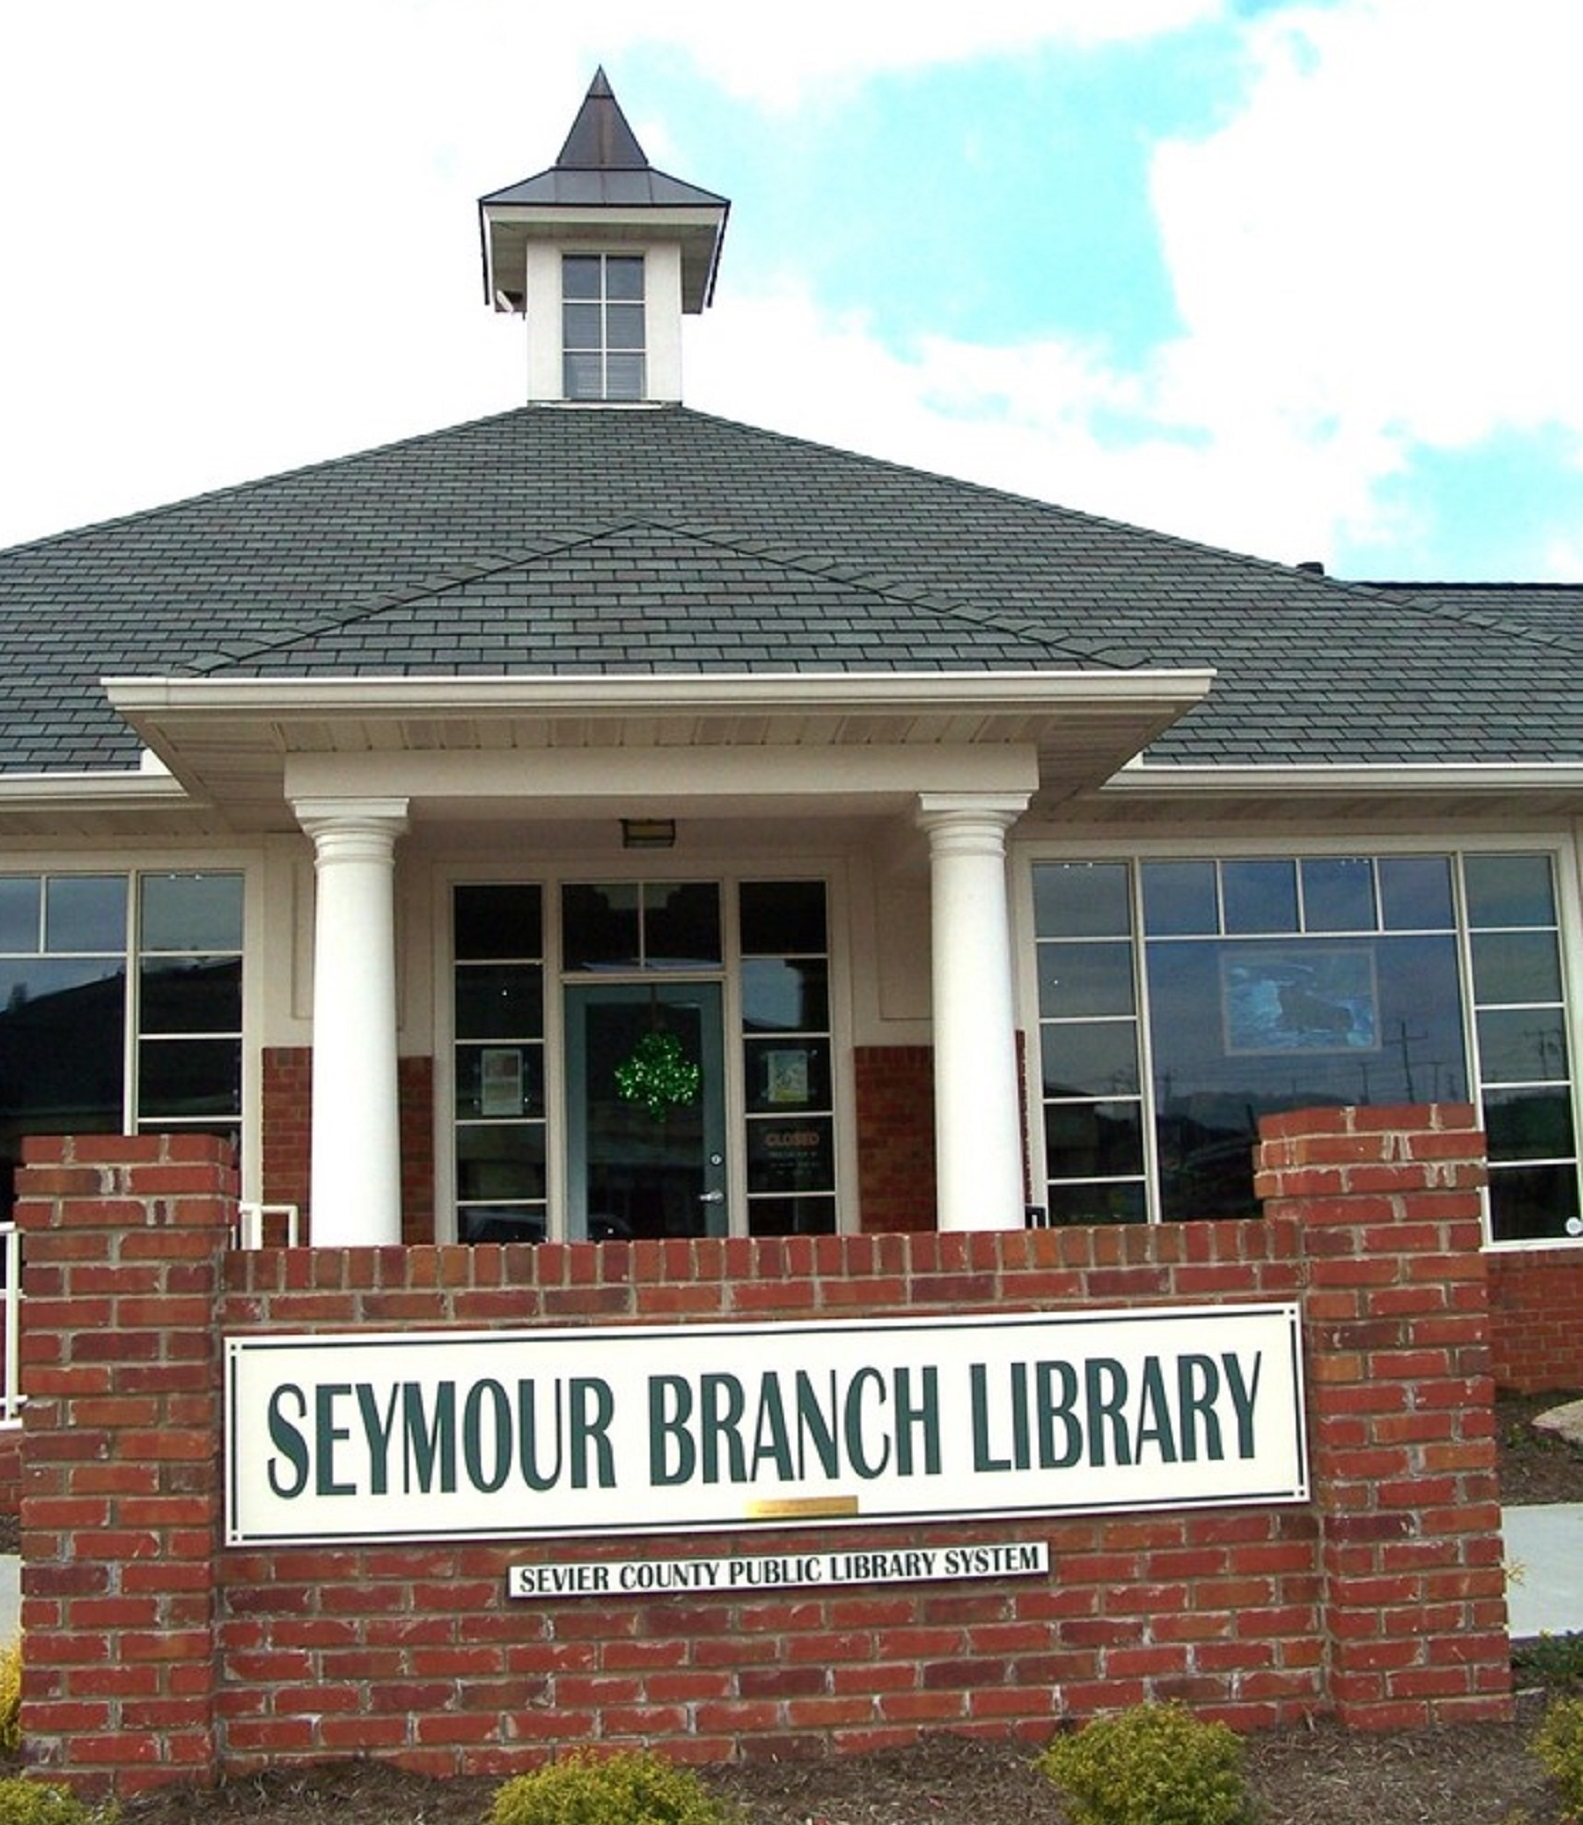 Photo of Seymour Branch - Sevier County